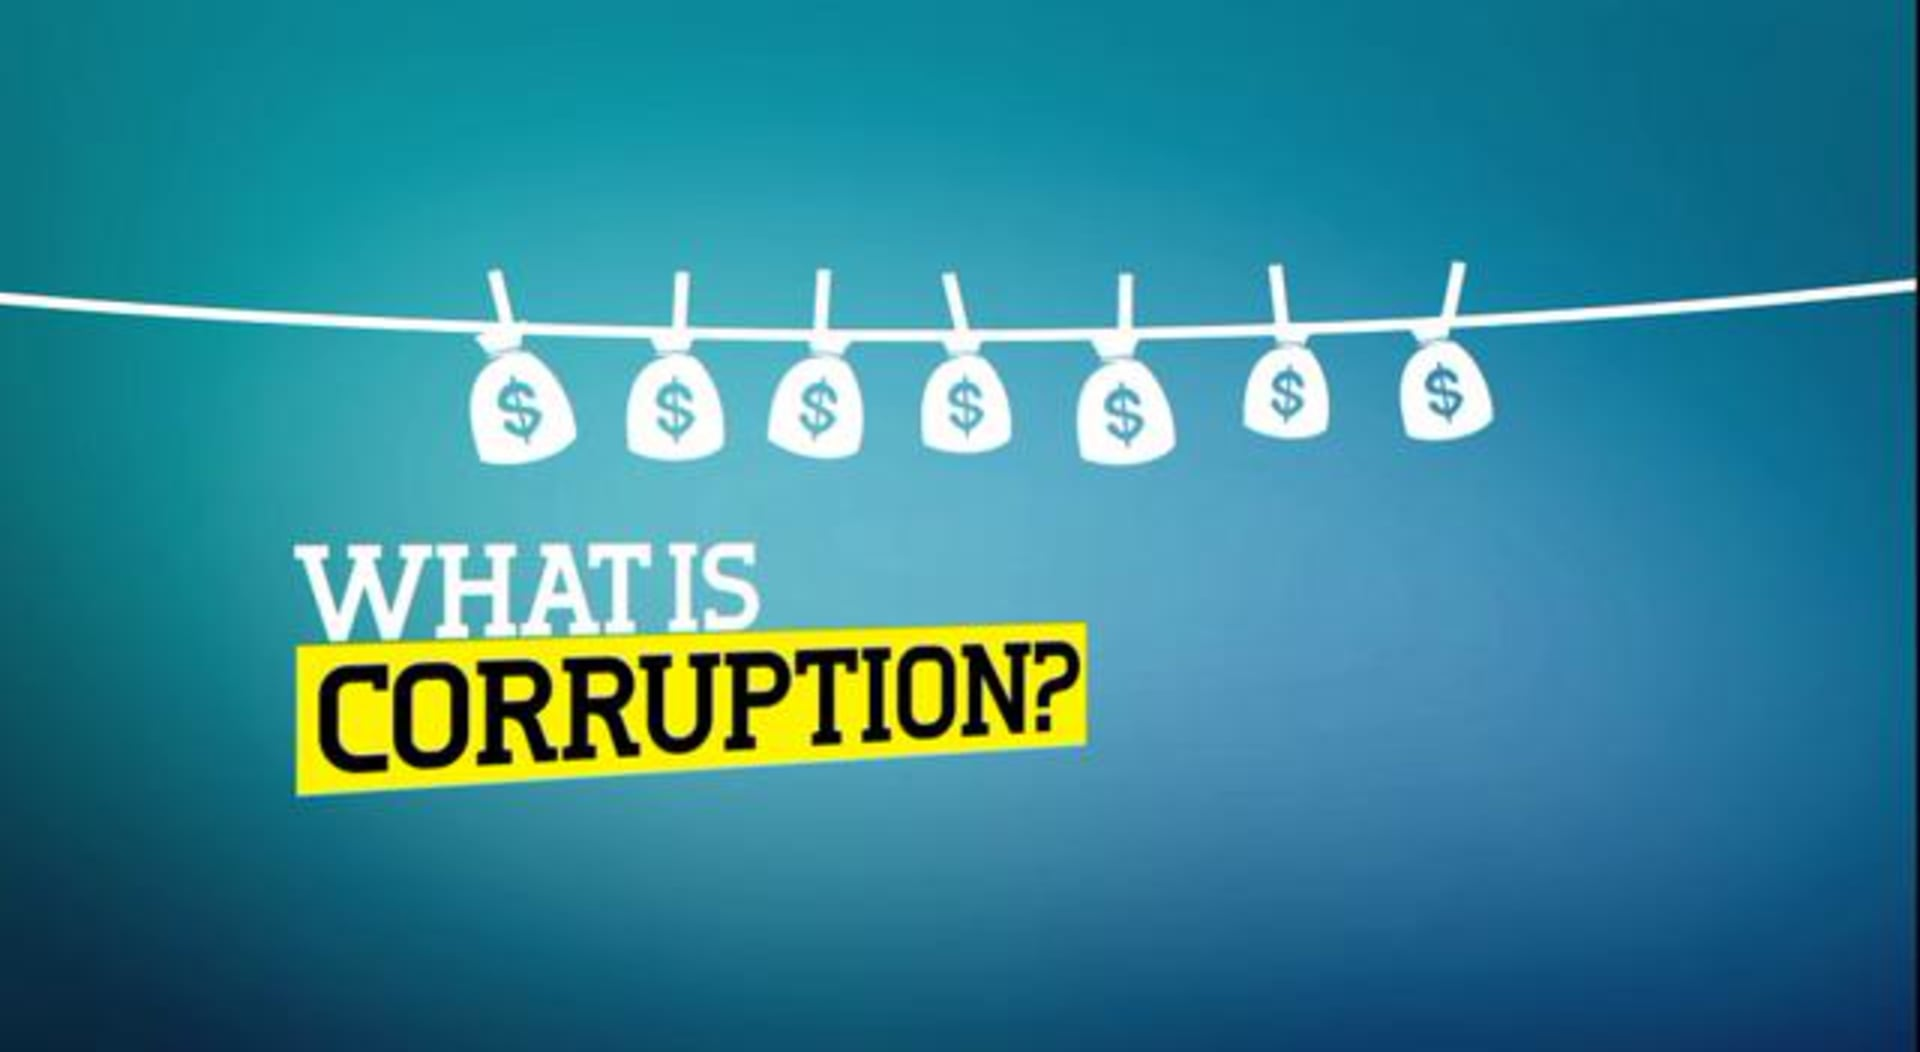 UN against corruption [2011]